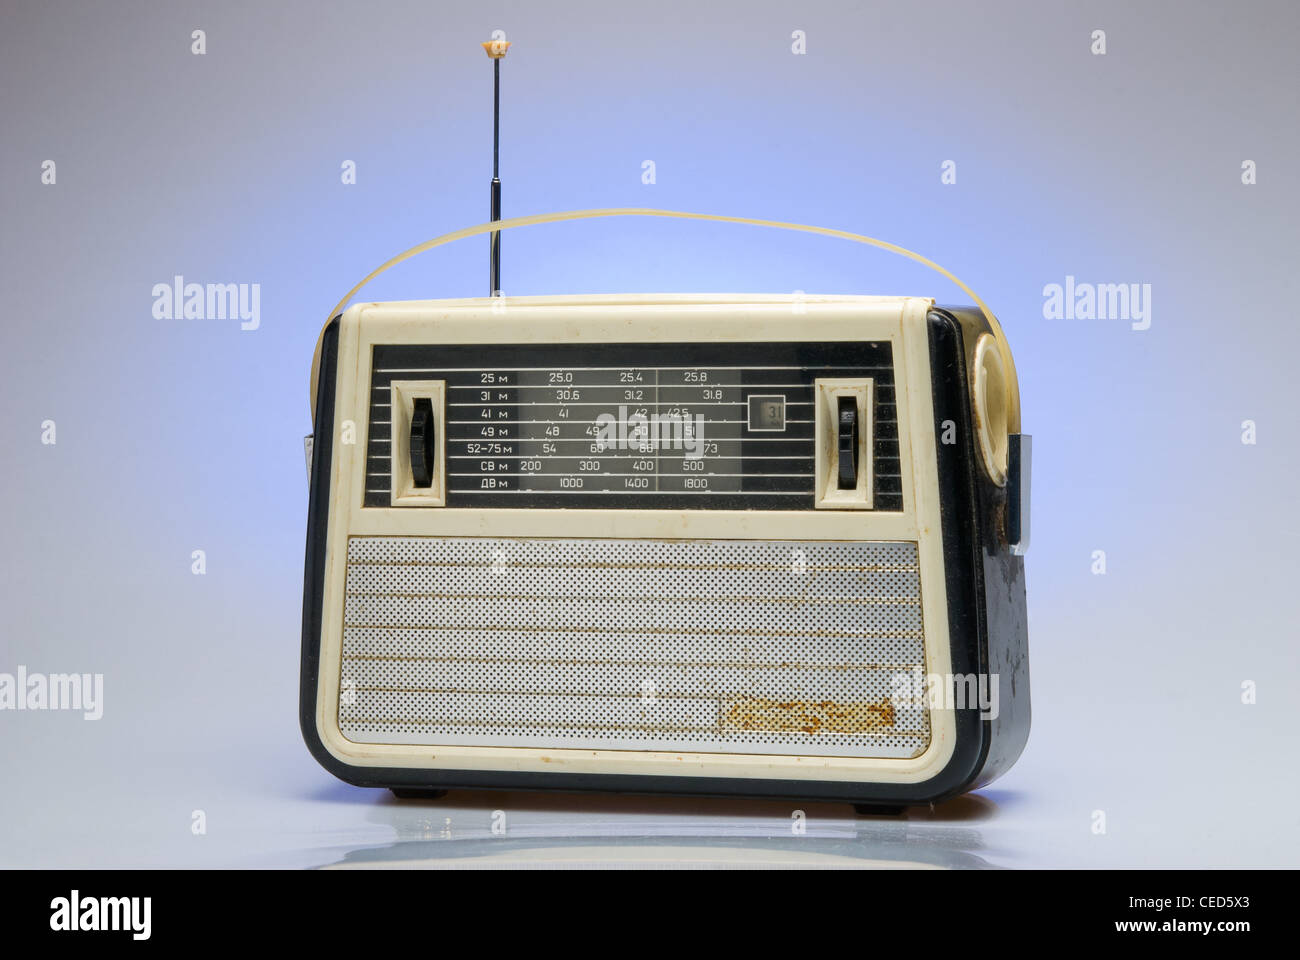 Old-fashioned soviet personal radio receiver. - Stock Image